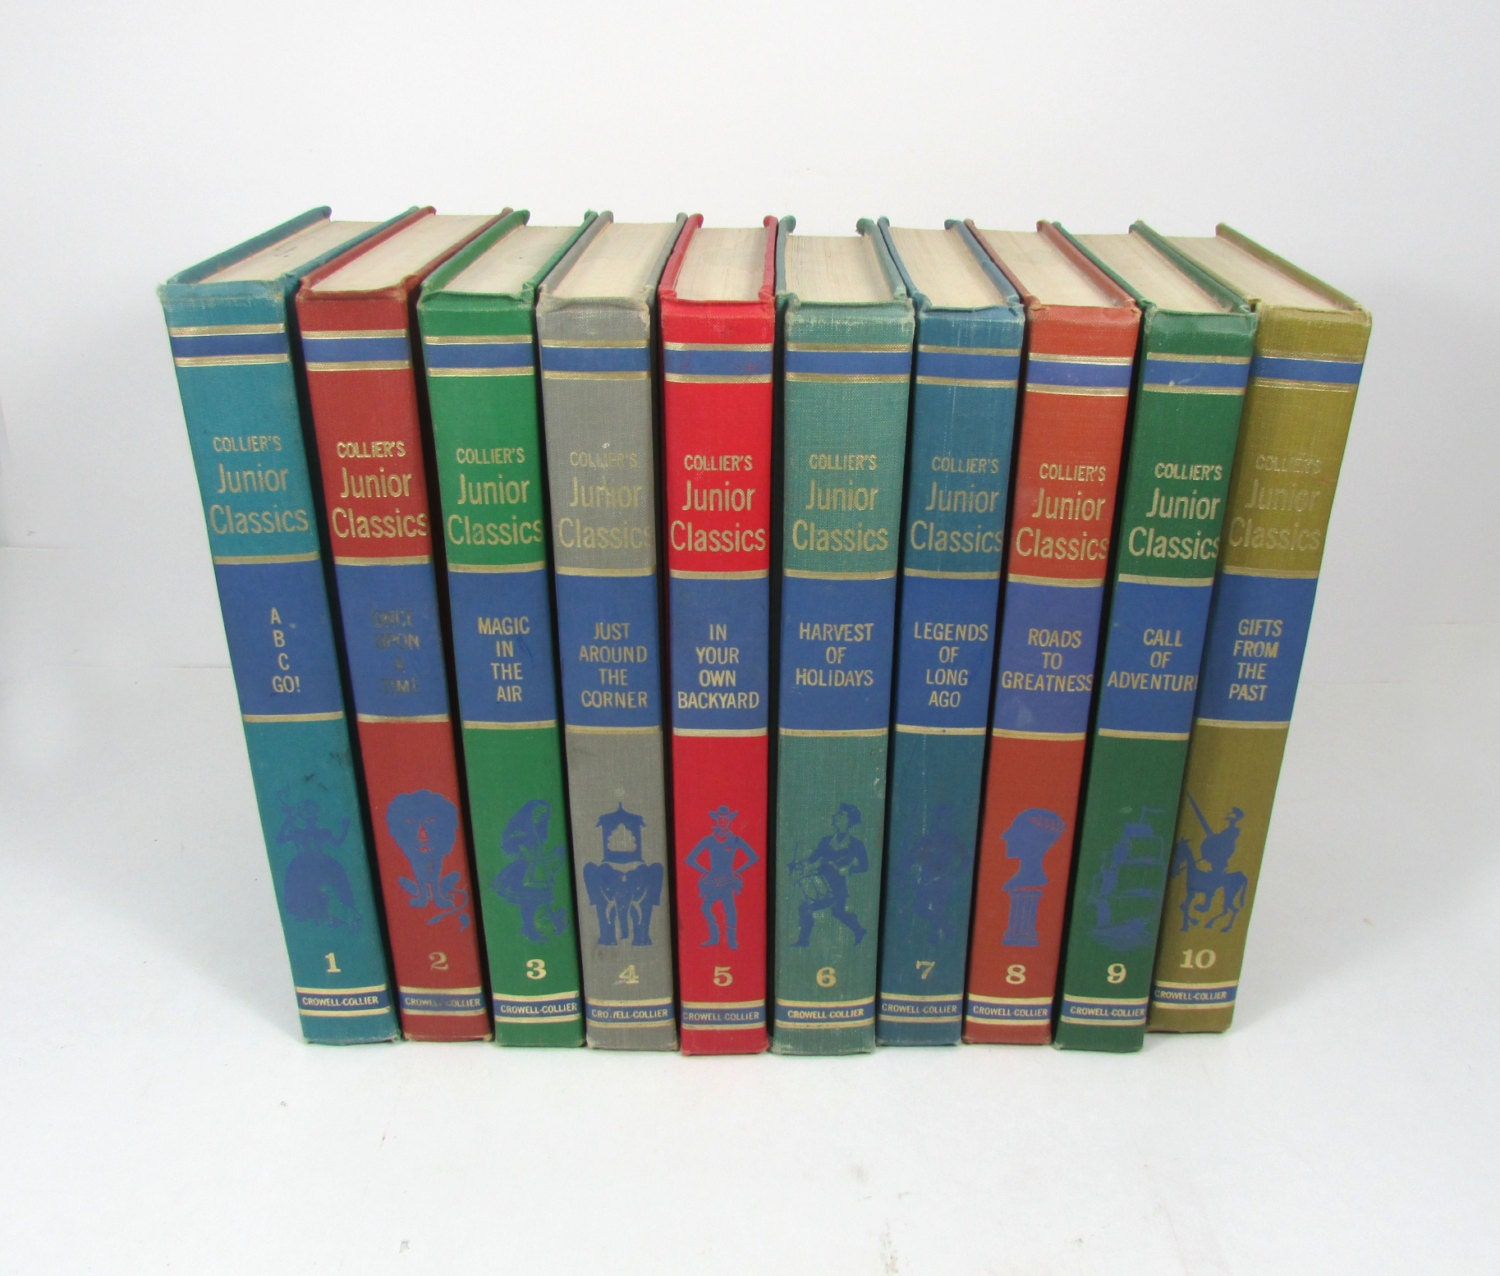 1962 Collier's Junior Classics Complete Set Volumes 1-10 Like New